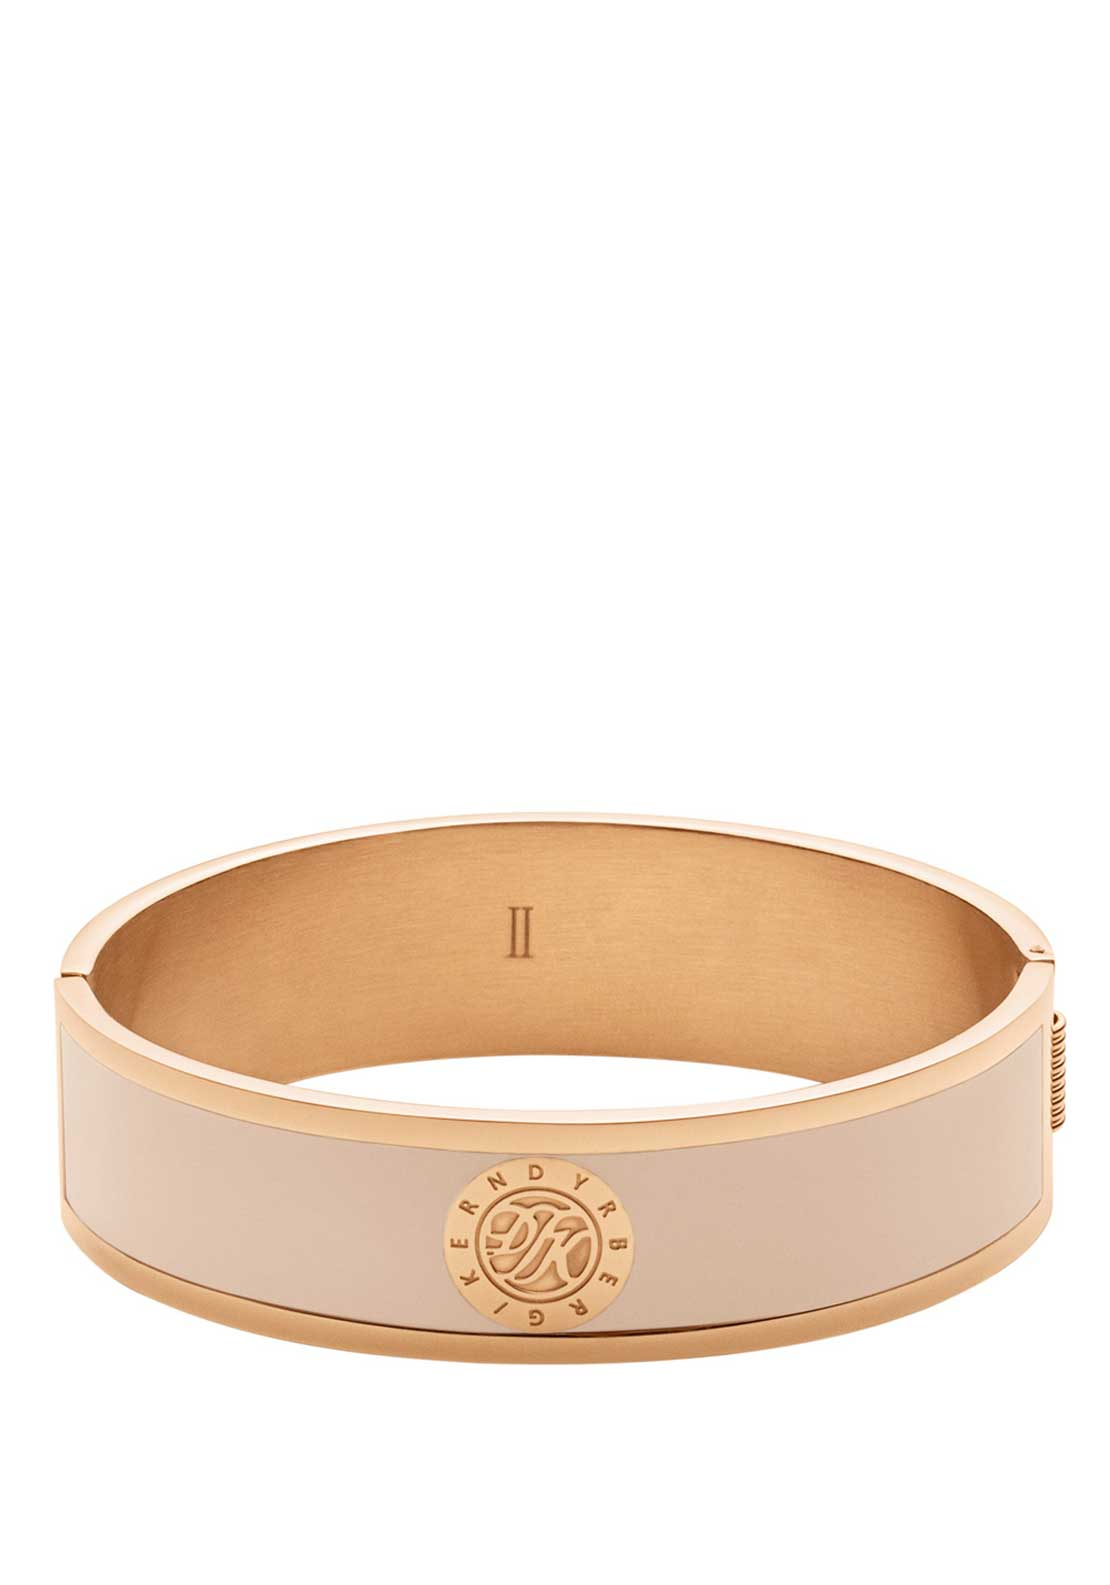 Dyrberg Kern Jovika Cream Bangle, Medium